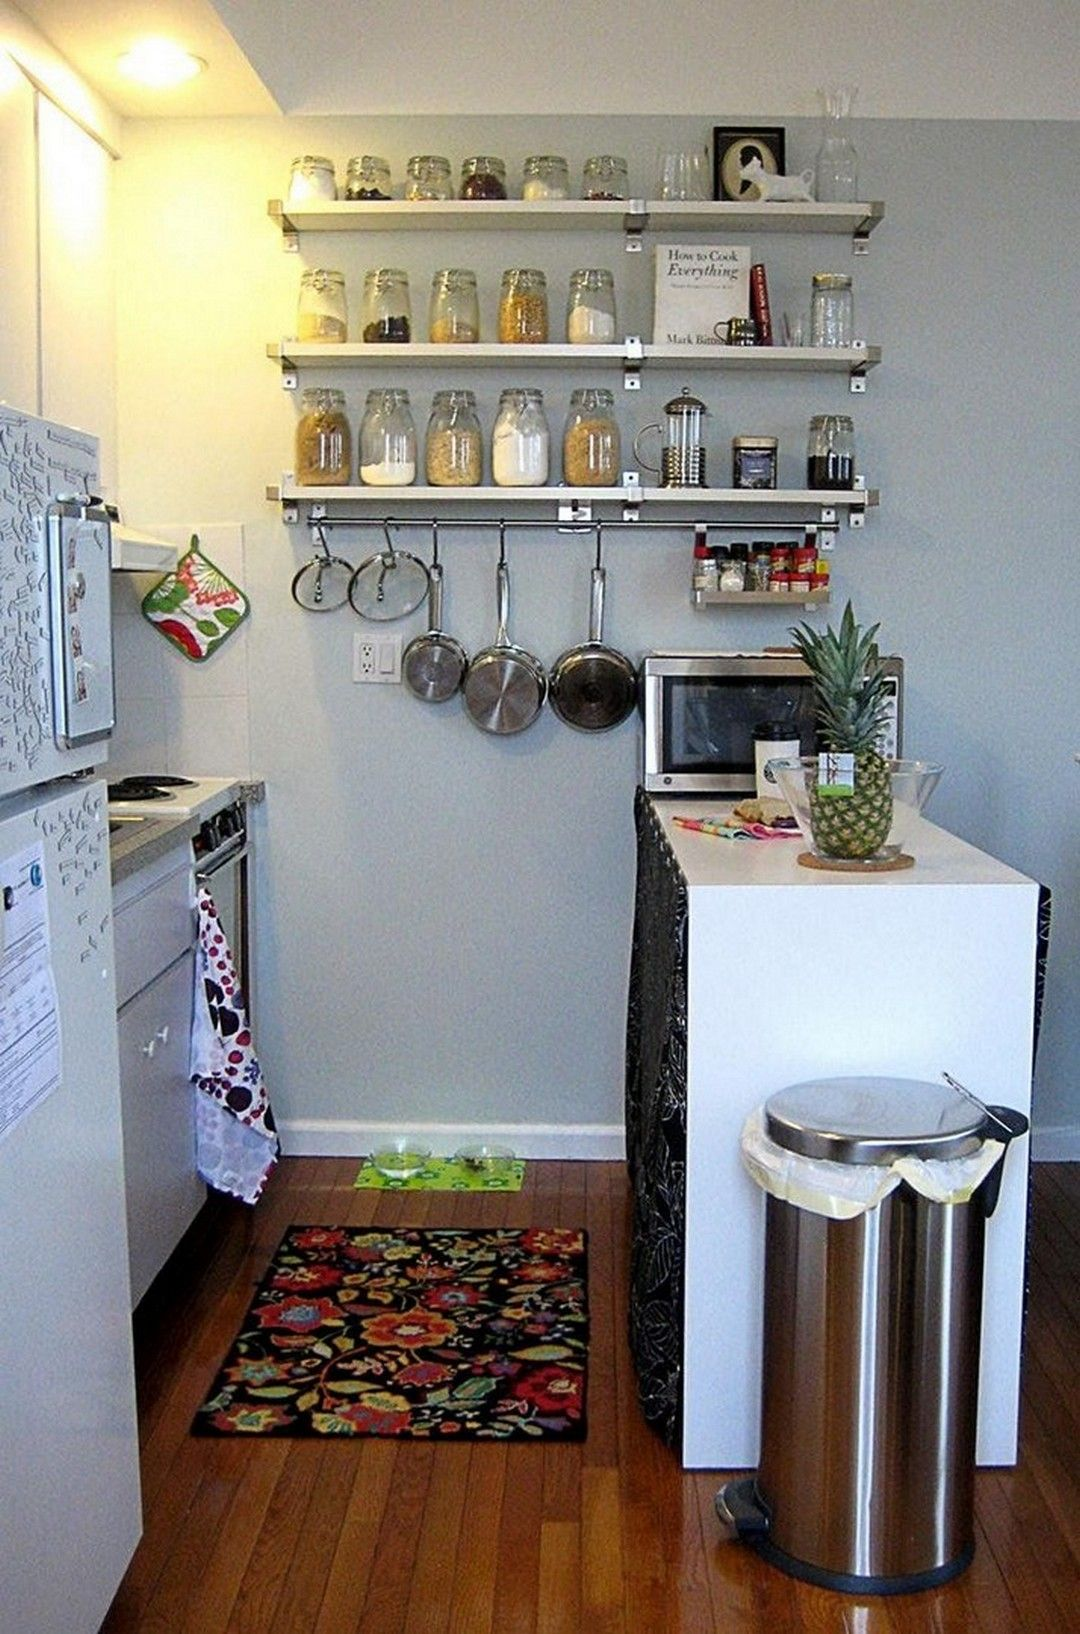 29 Organization And Storage Ideas For Small Spaces